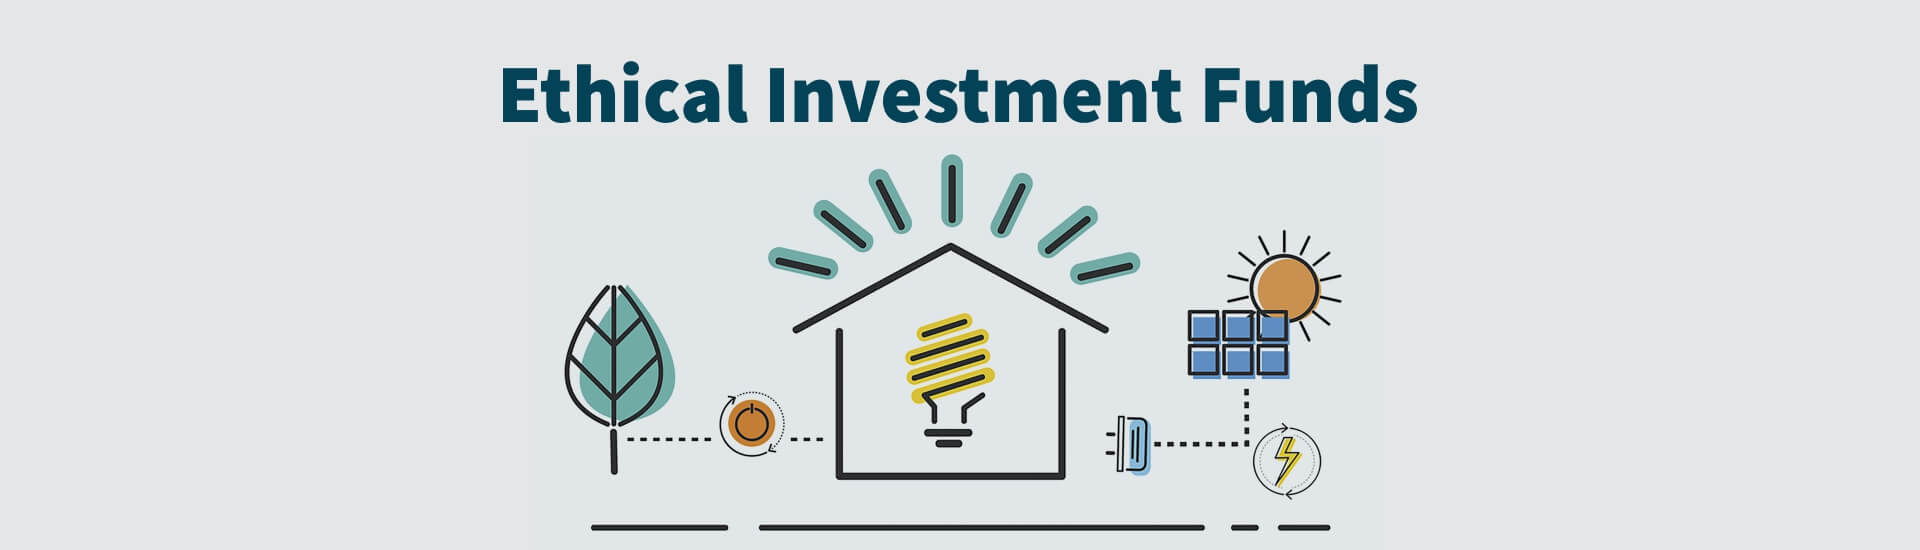 Ethical Investment Funds